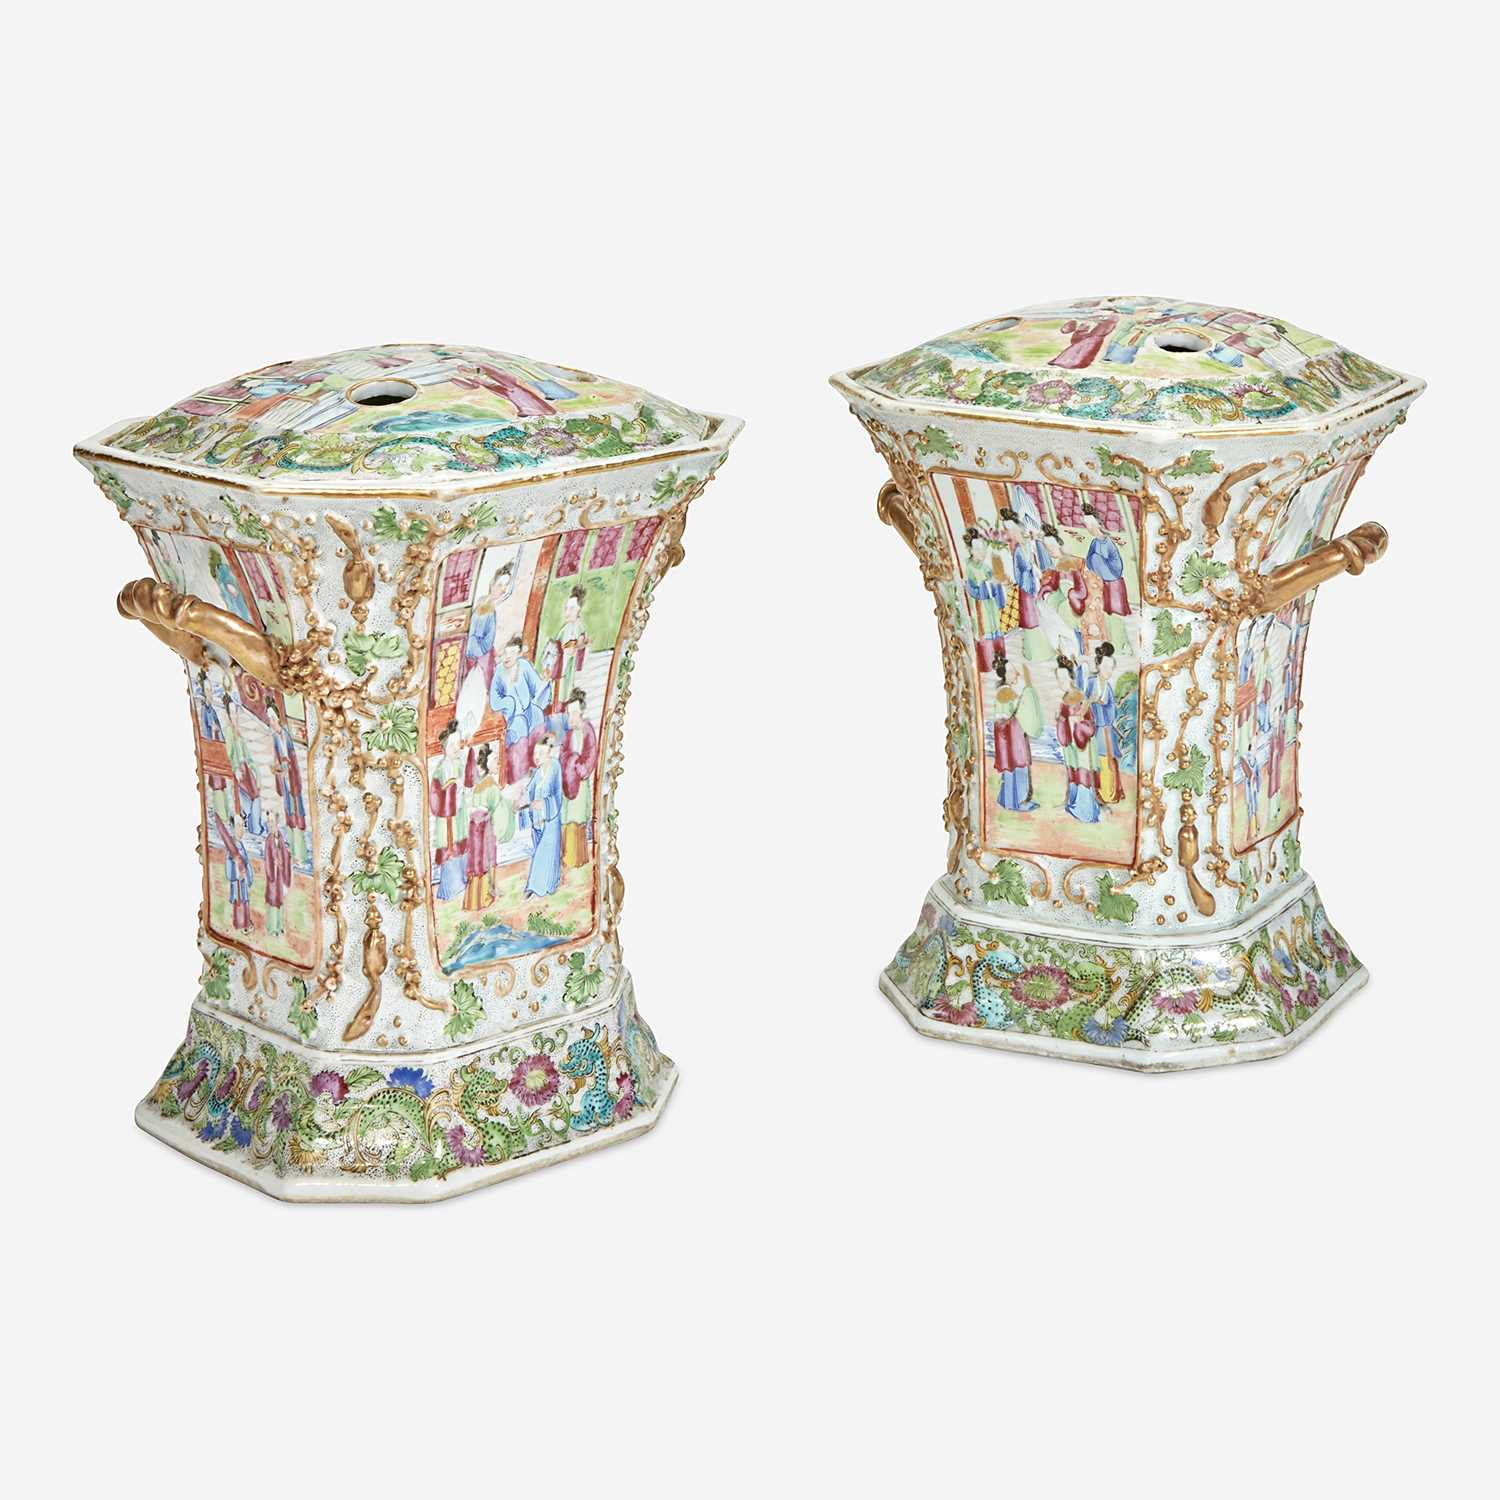 Lot 80 - A Pair of Chinese Export Famille Rose Porcelain Covered Bough Pots